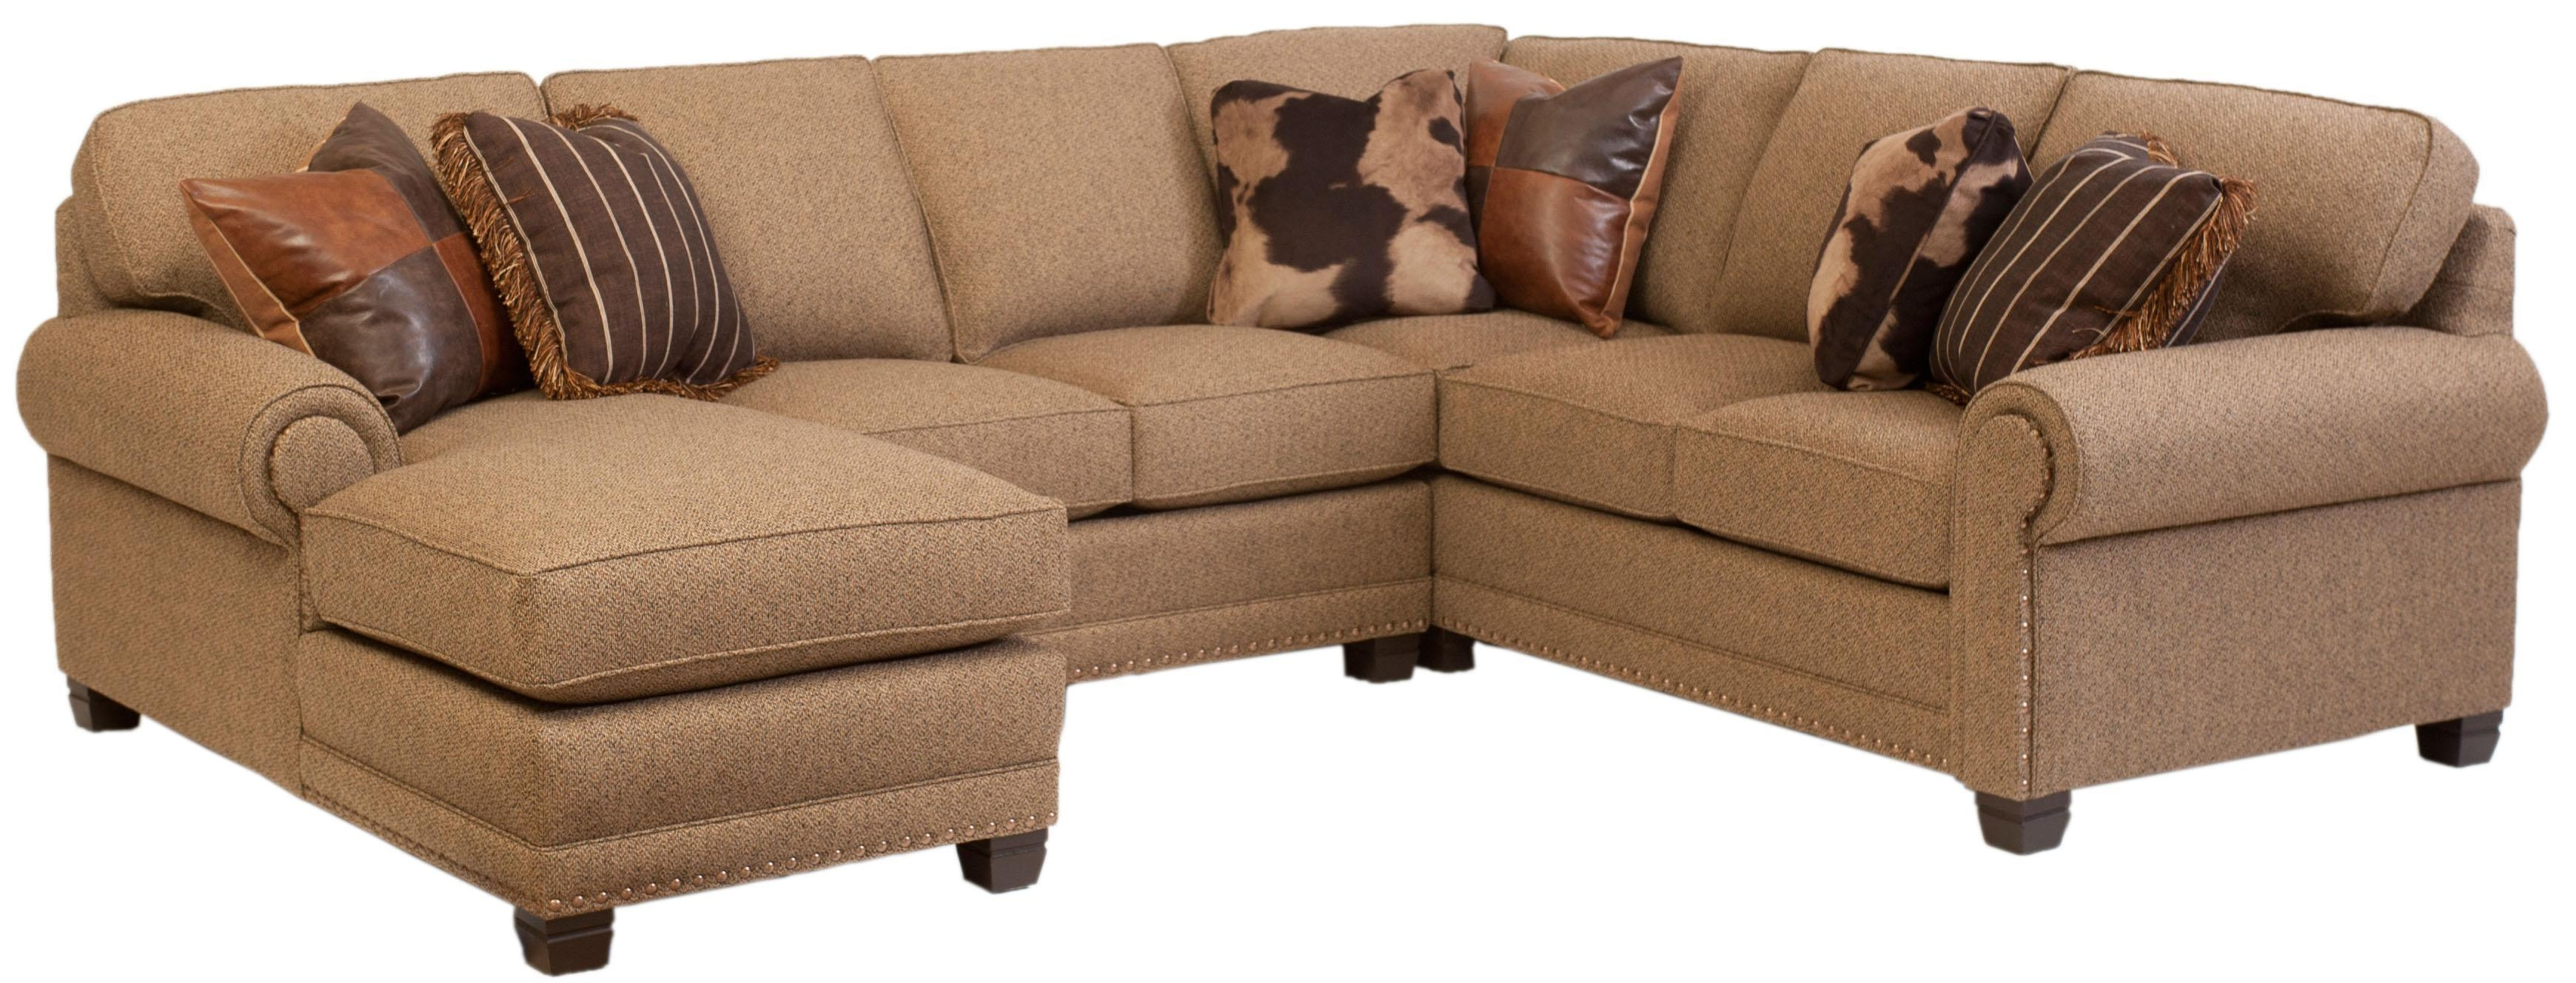 Sofas Center : Frighteningtional Sofa With Chaise Lounge Image Throughout Angled Chaise Sofa (View 4 of 20)